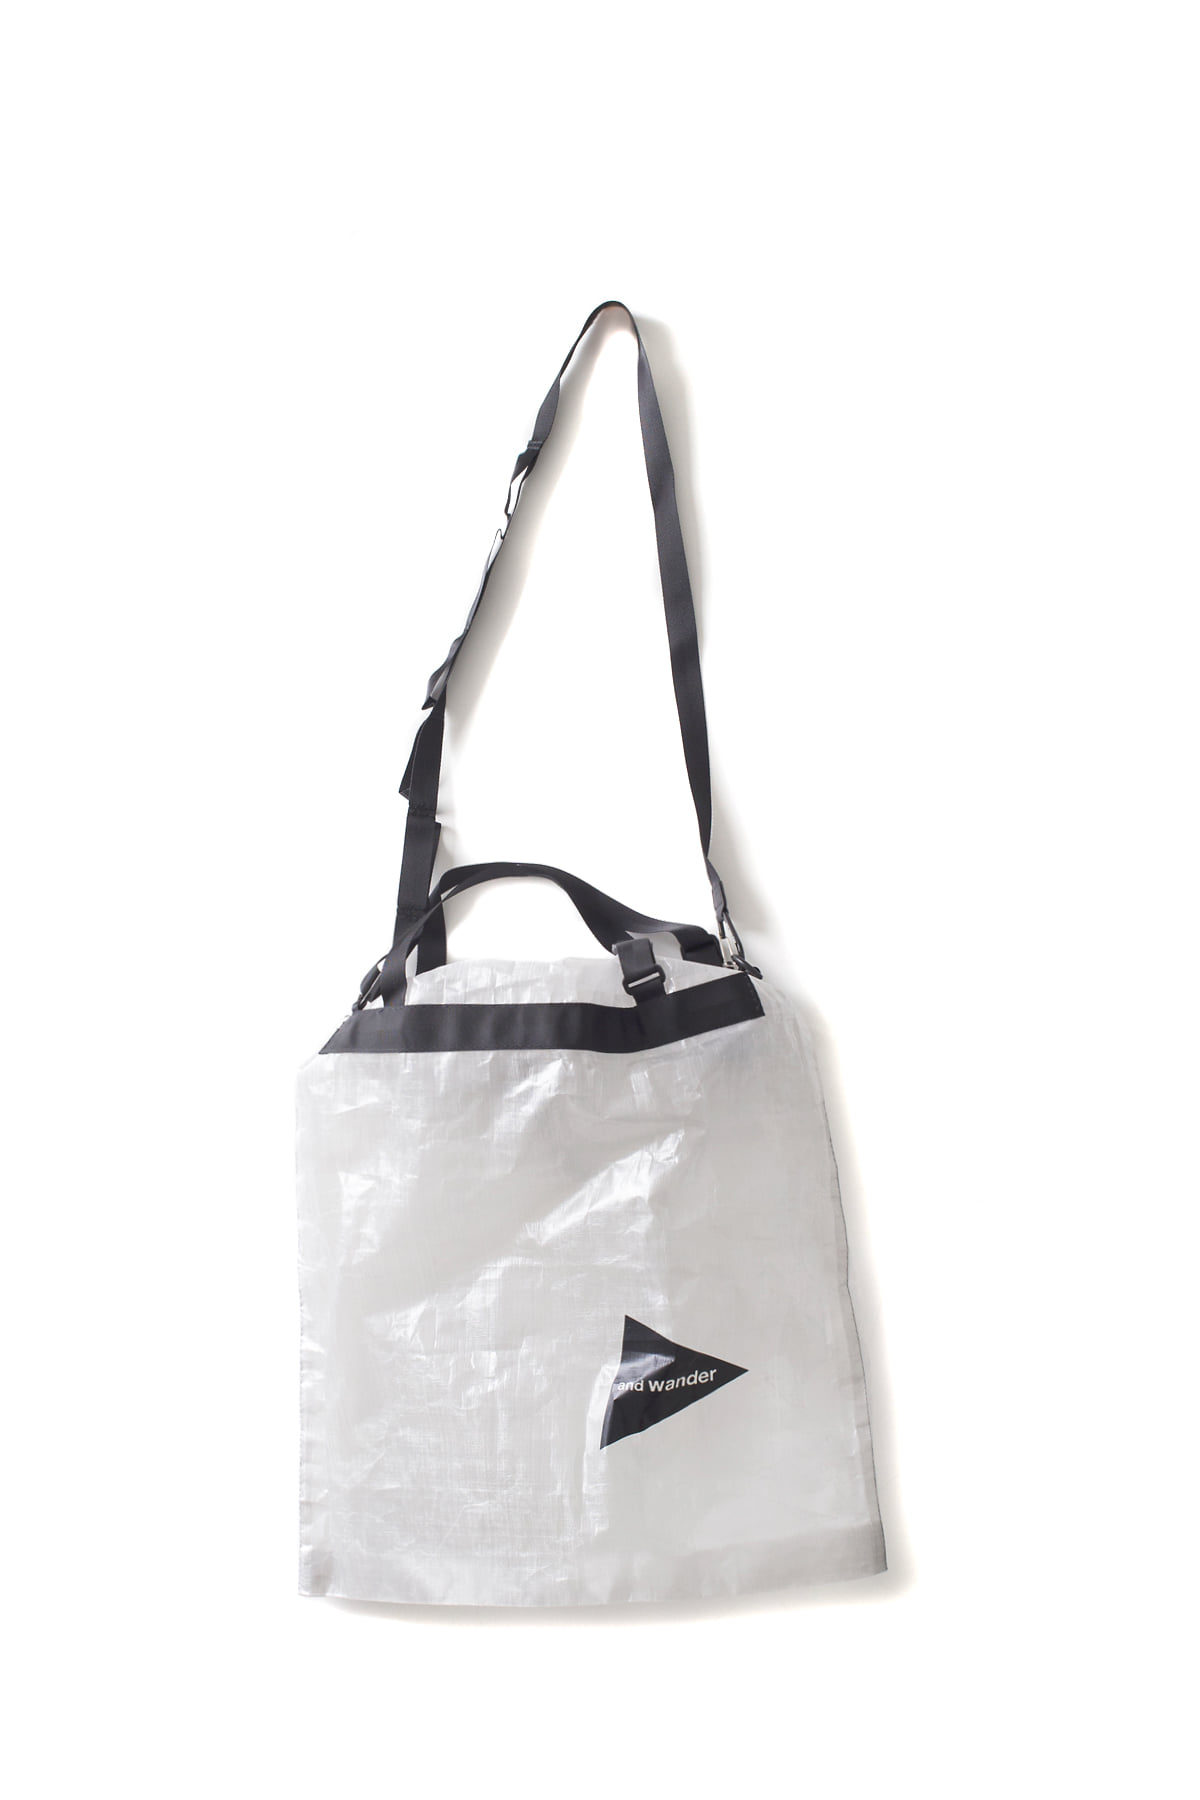 and wander : Cuben Fiber Stuffsack Large (White)